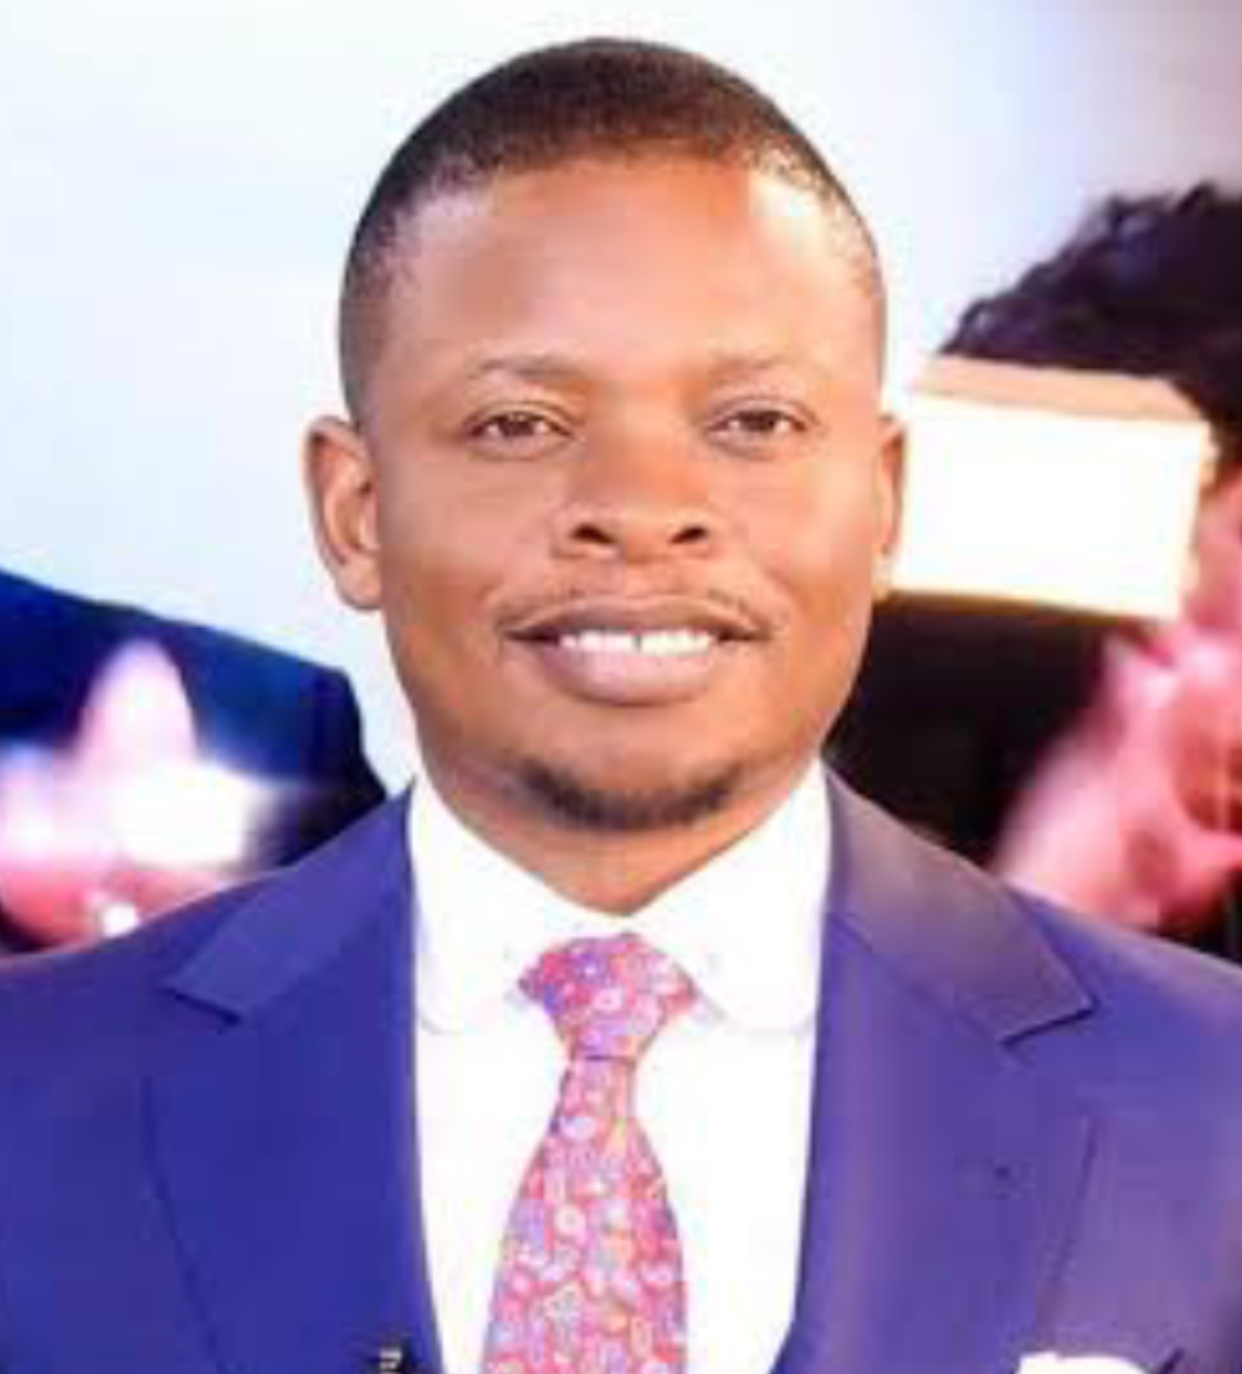 Prophet Bushiri says he is a victim of extortion, rape allegations fabricated